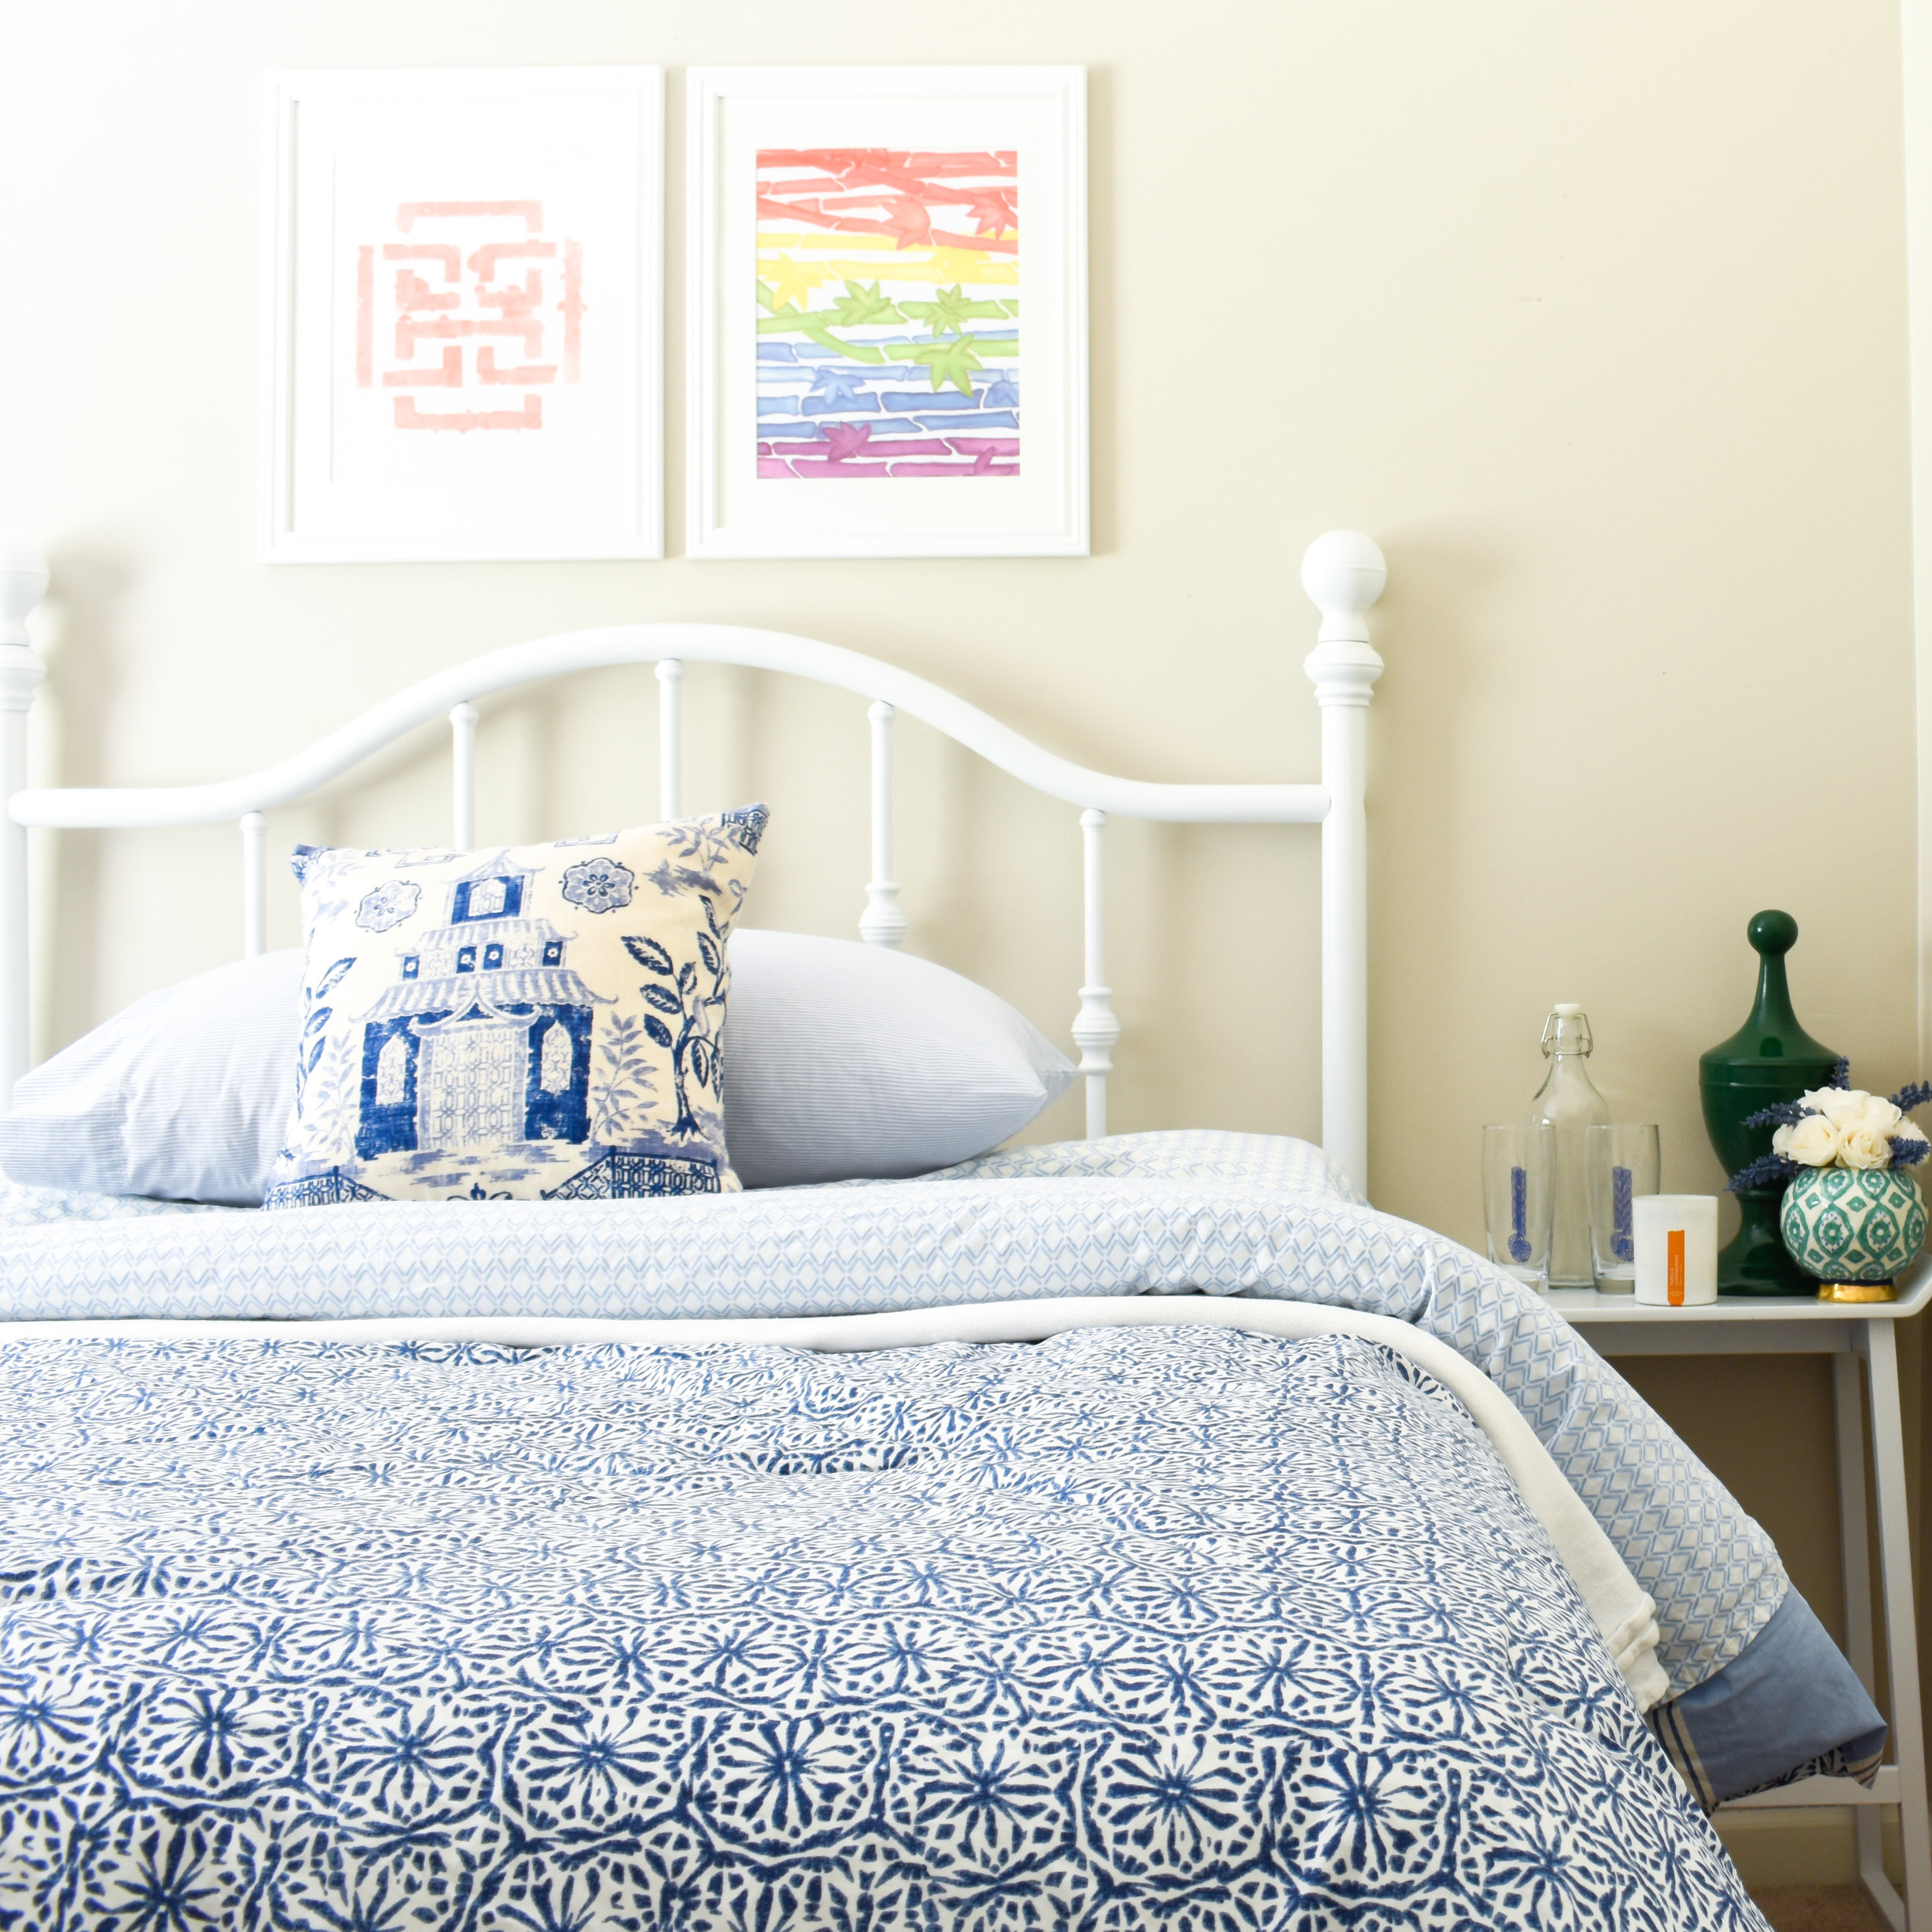 color and pattern set the stage for fun in this small bedroom